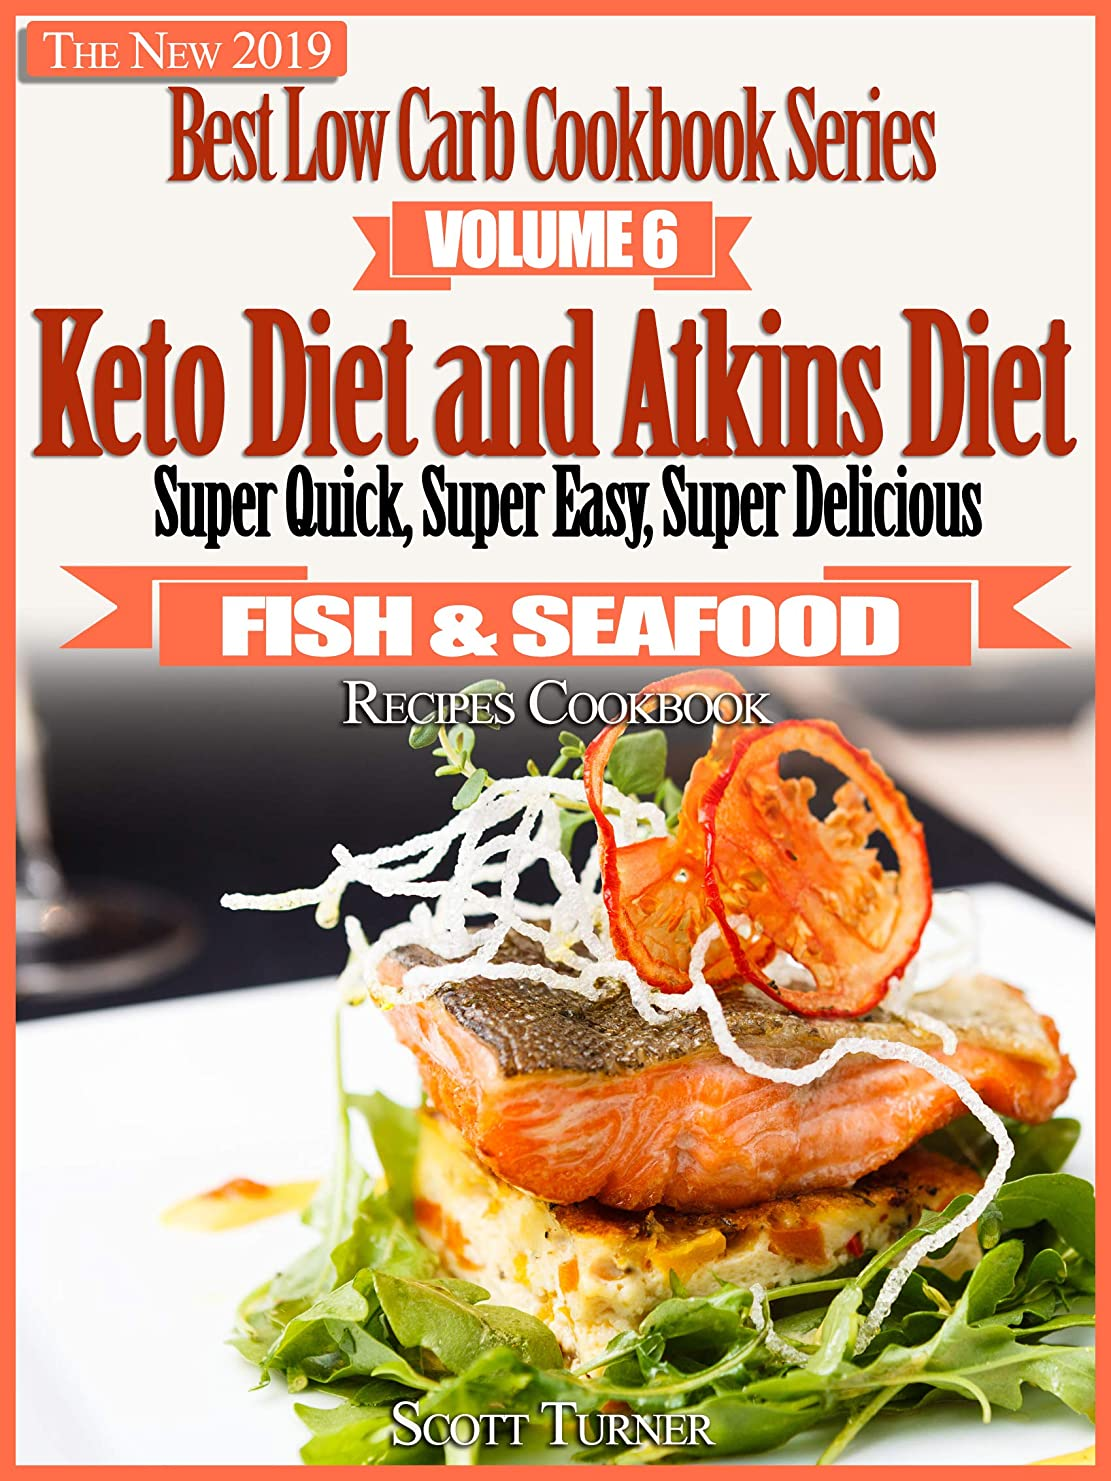 The New 2019 Best Low Carb Cookbook Series, Volume Six: Keto Diet and Atkins Diet Super Quick, Super Easy, Super Delicious Fish & Seafood Recipes Cookbook (English Edition)